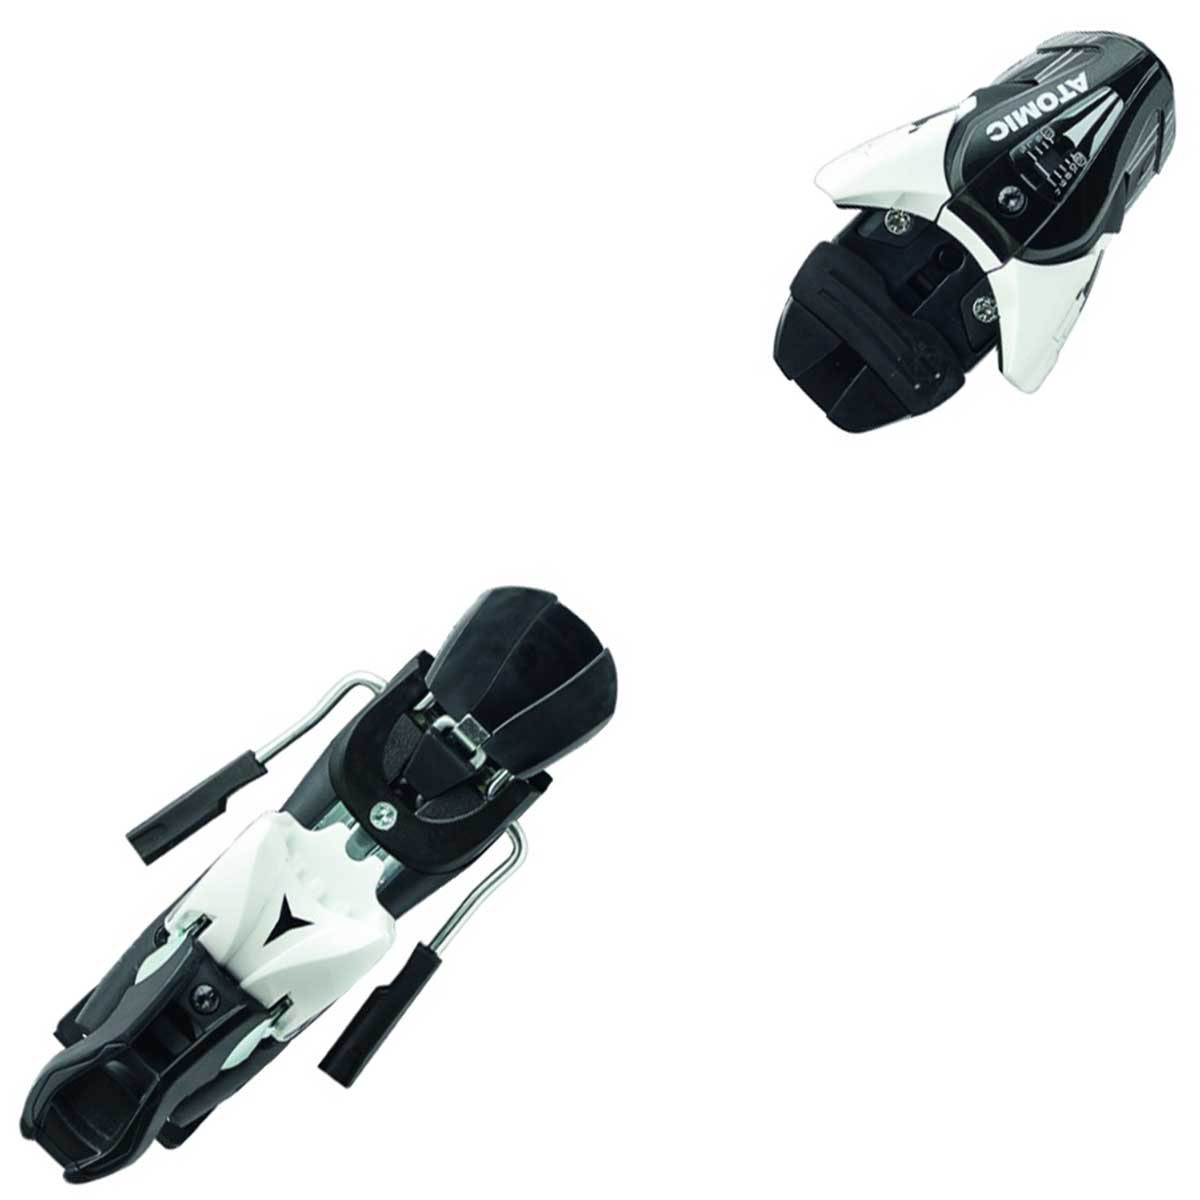 Atomic Z 12 ski binding in black and white